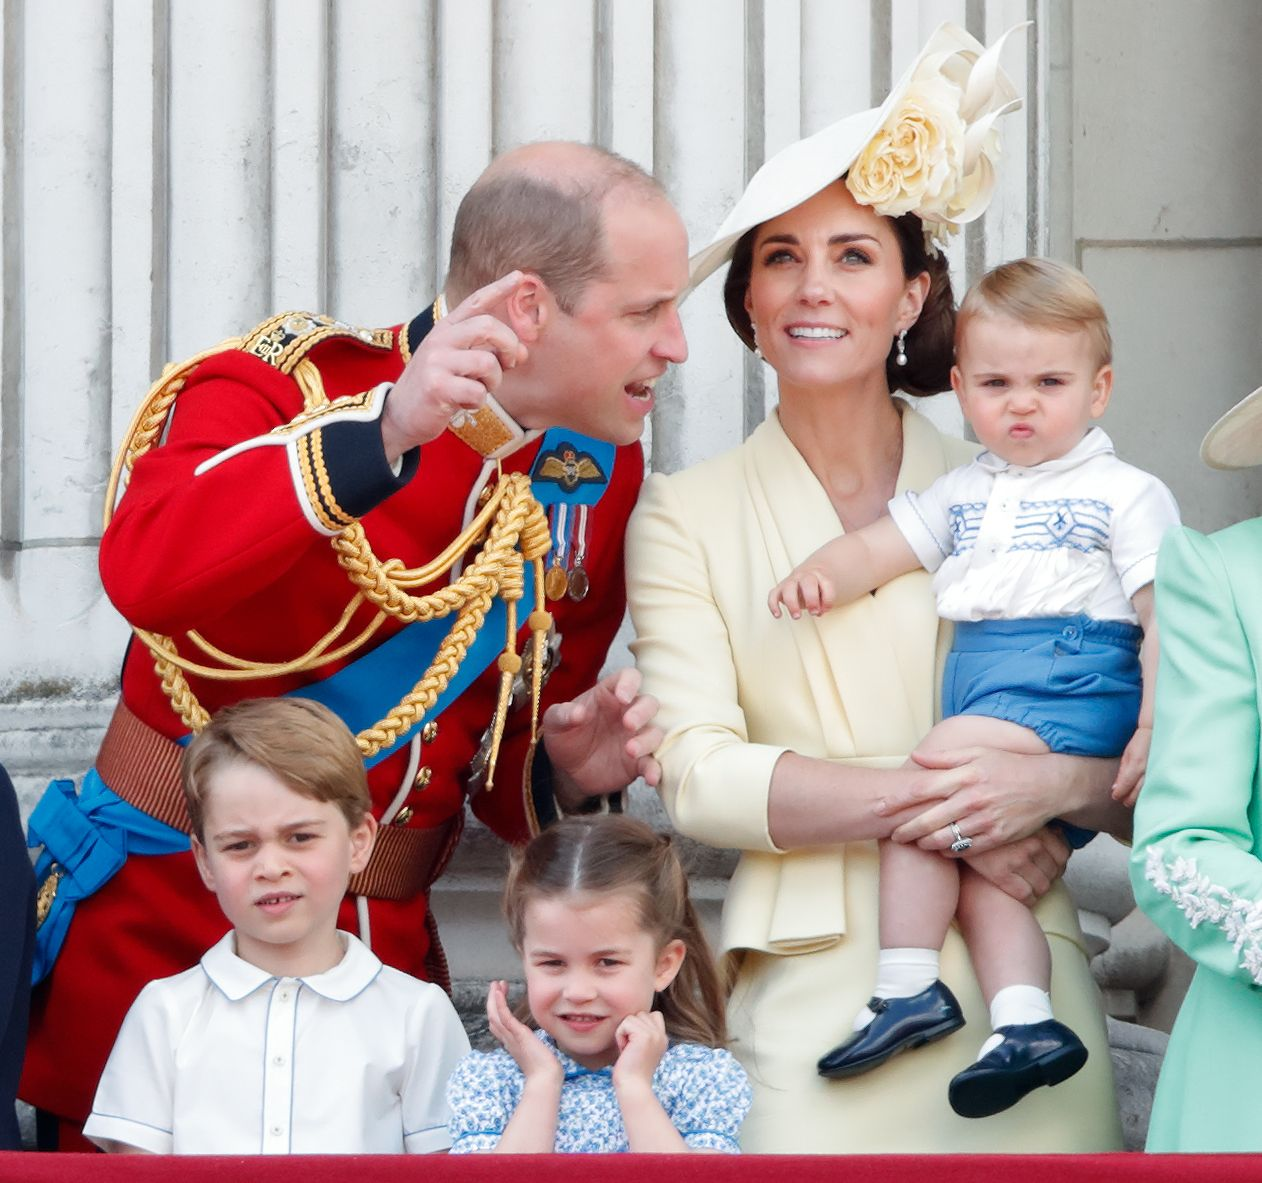 The Cambridge children cuddle up to Prince William in a new behind-the-scenes photo